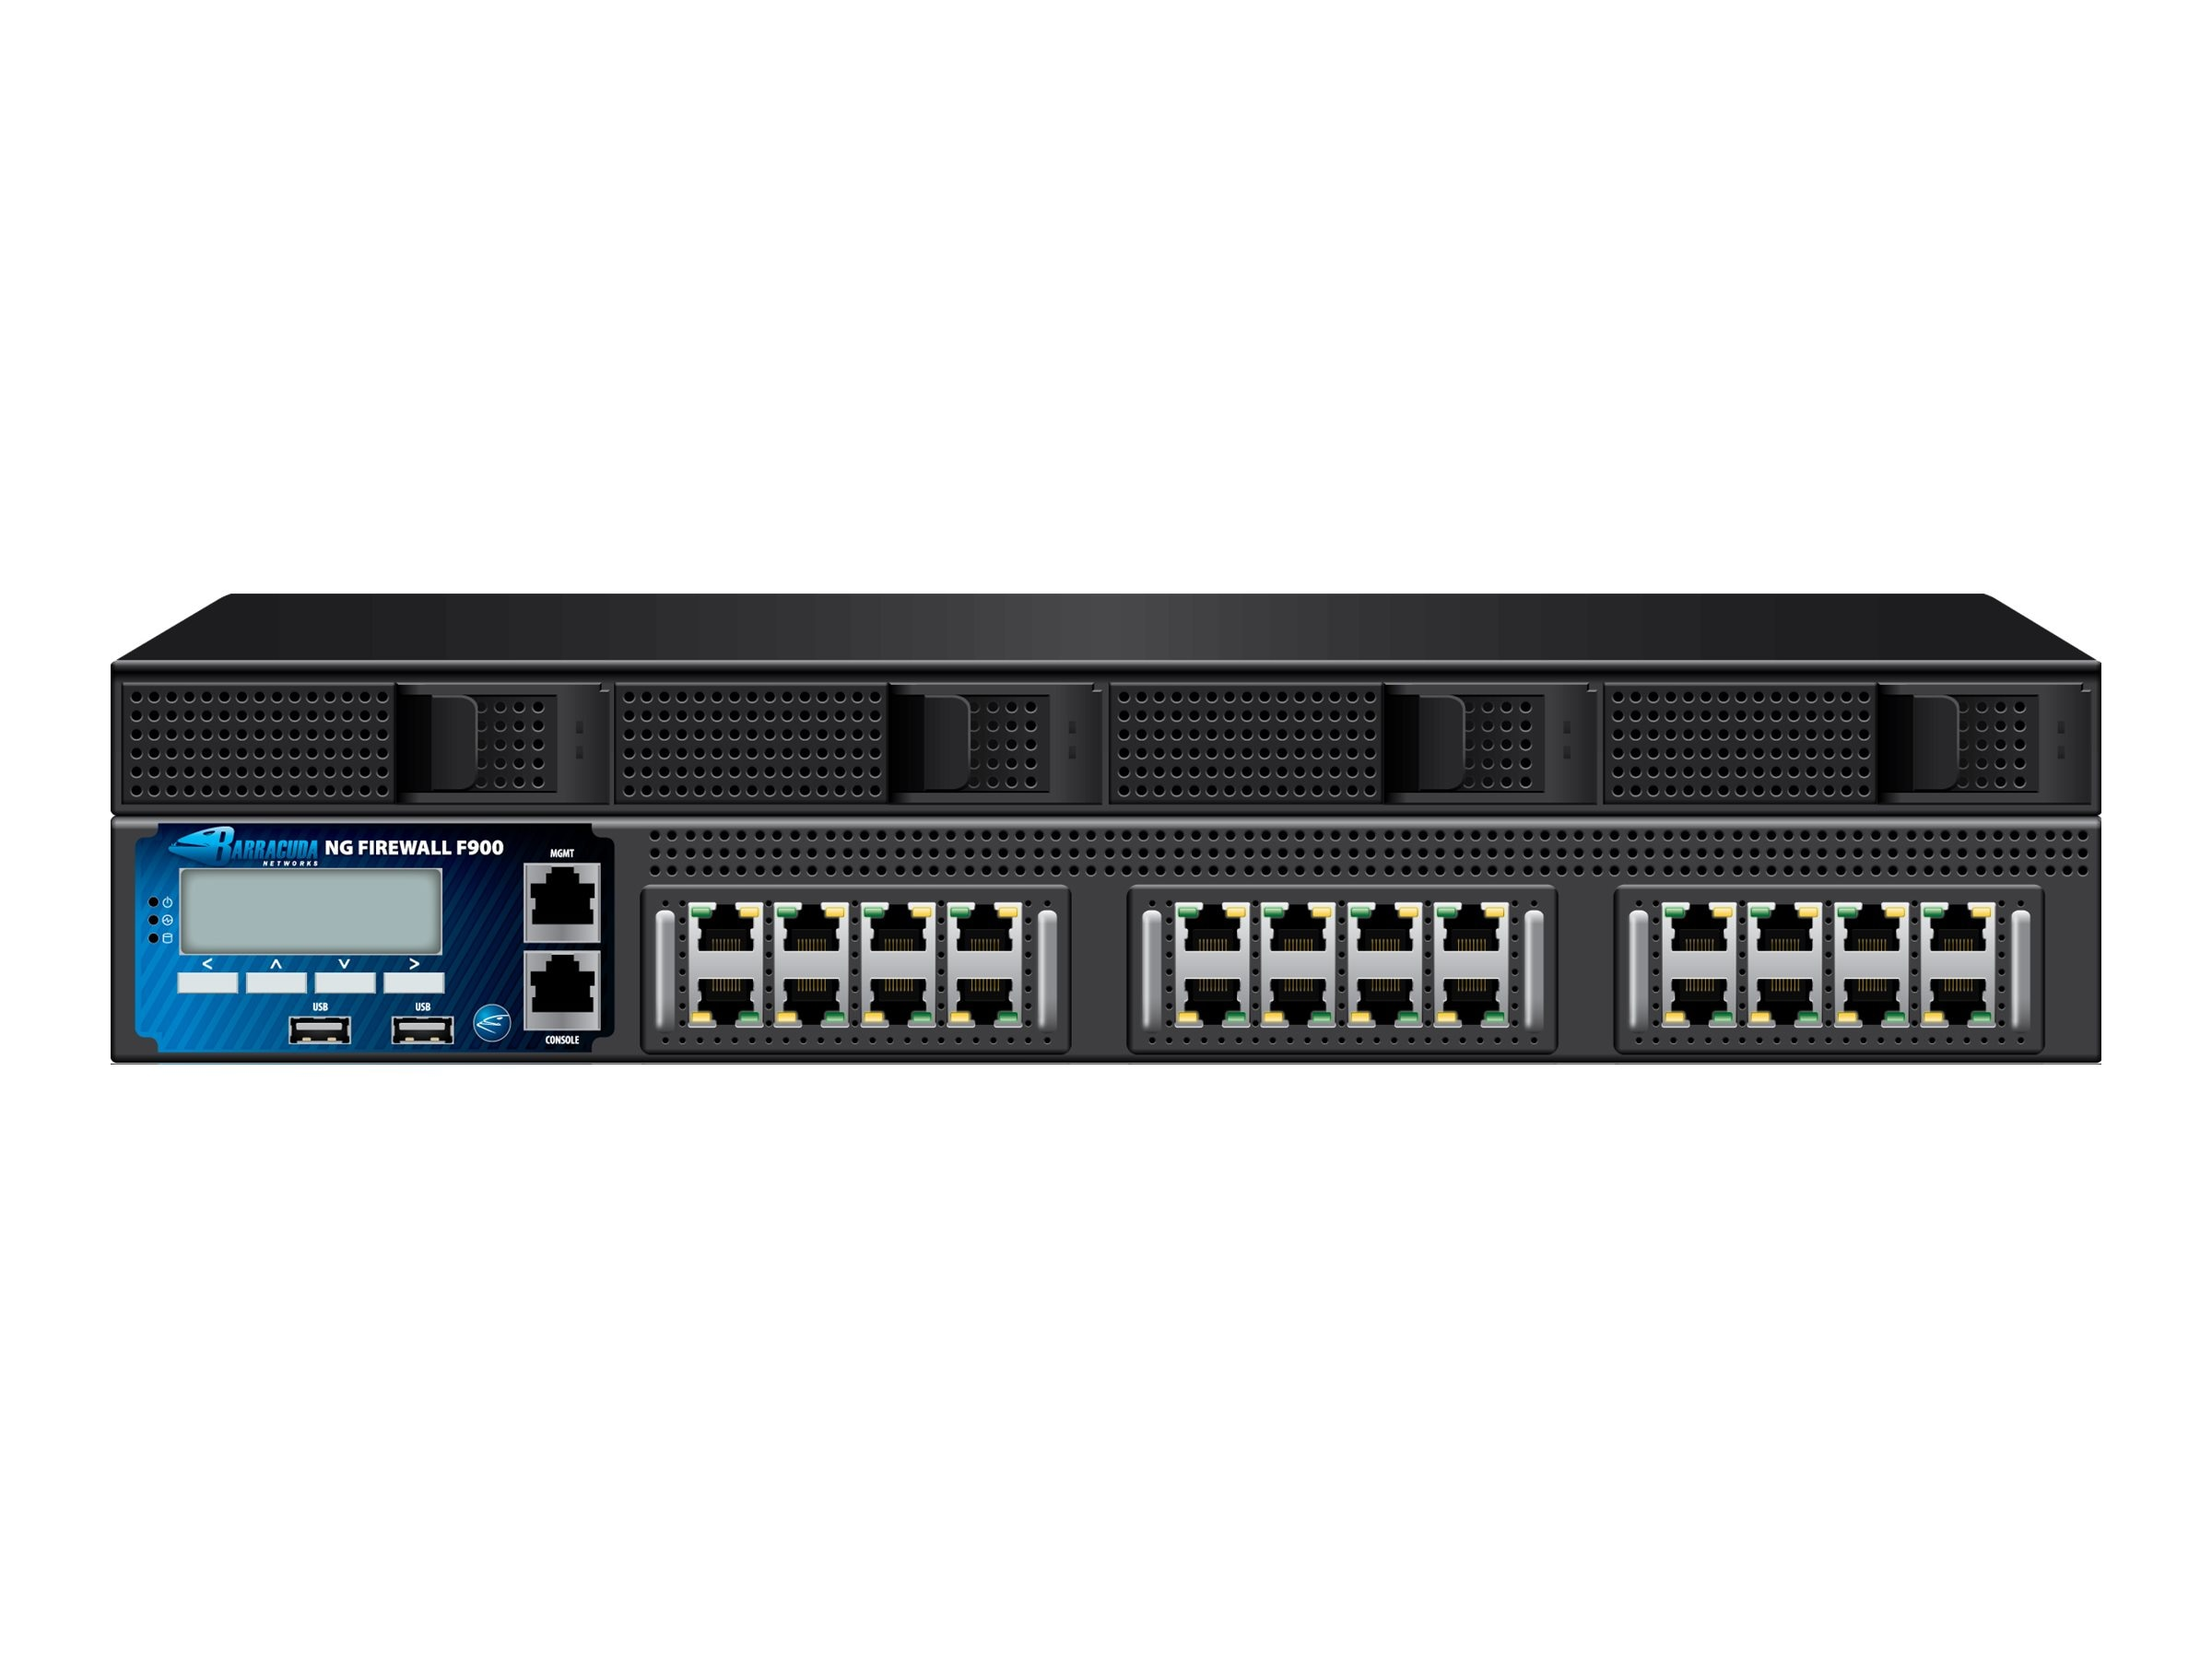 Barracuda NG Firewall F900 w 3-year EU+IR